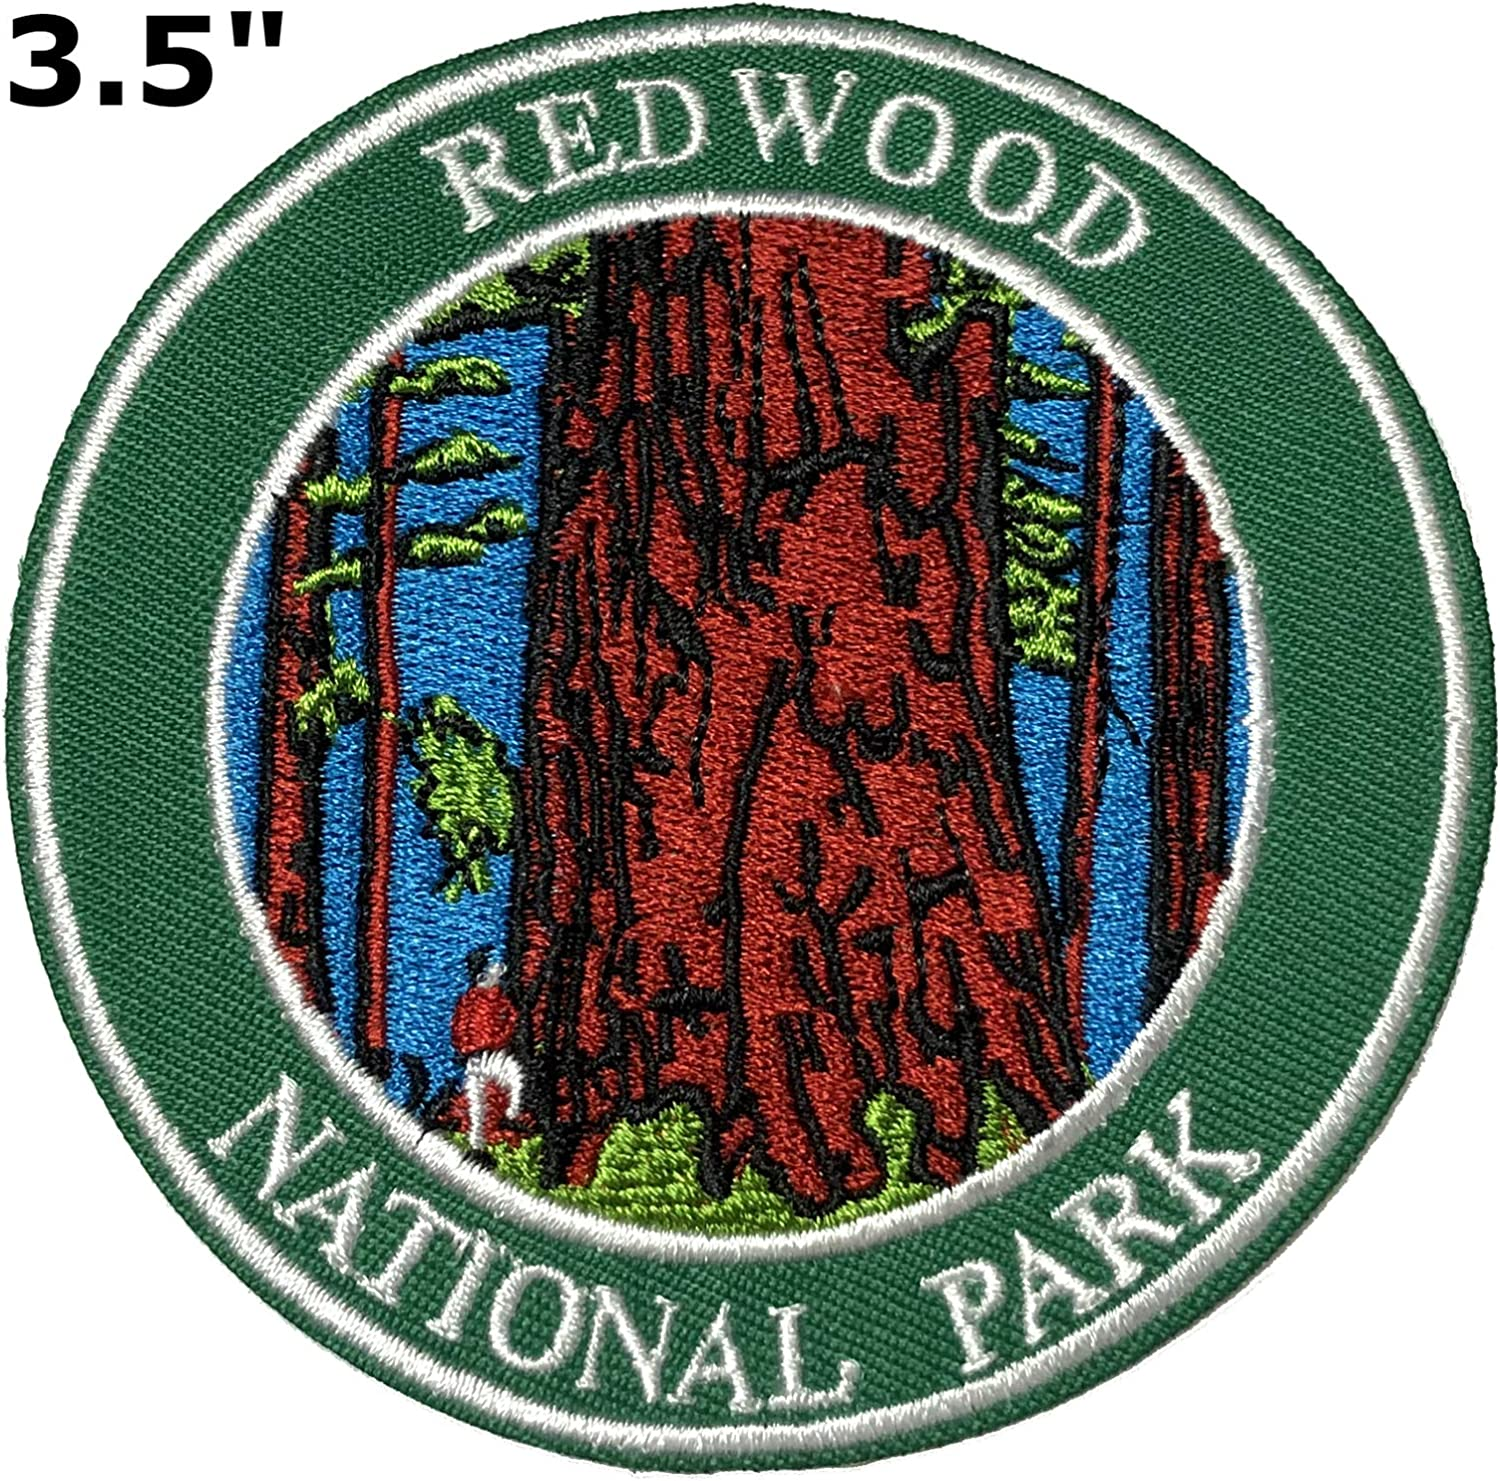 Sequoia Redwoods National Park Embroidered Patch Iron Sew-On Souvenir Applique